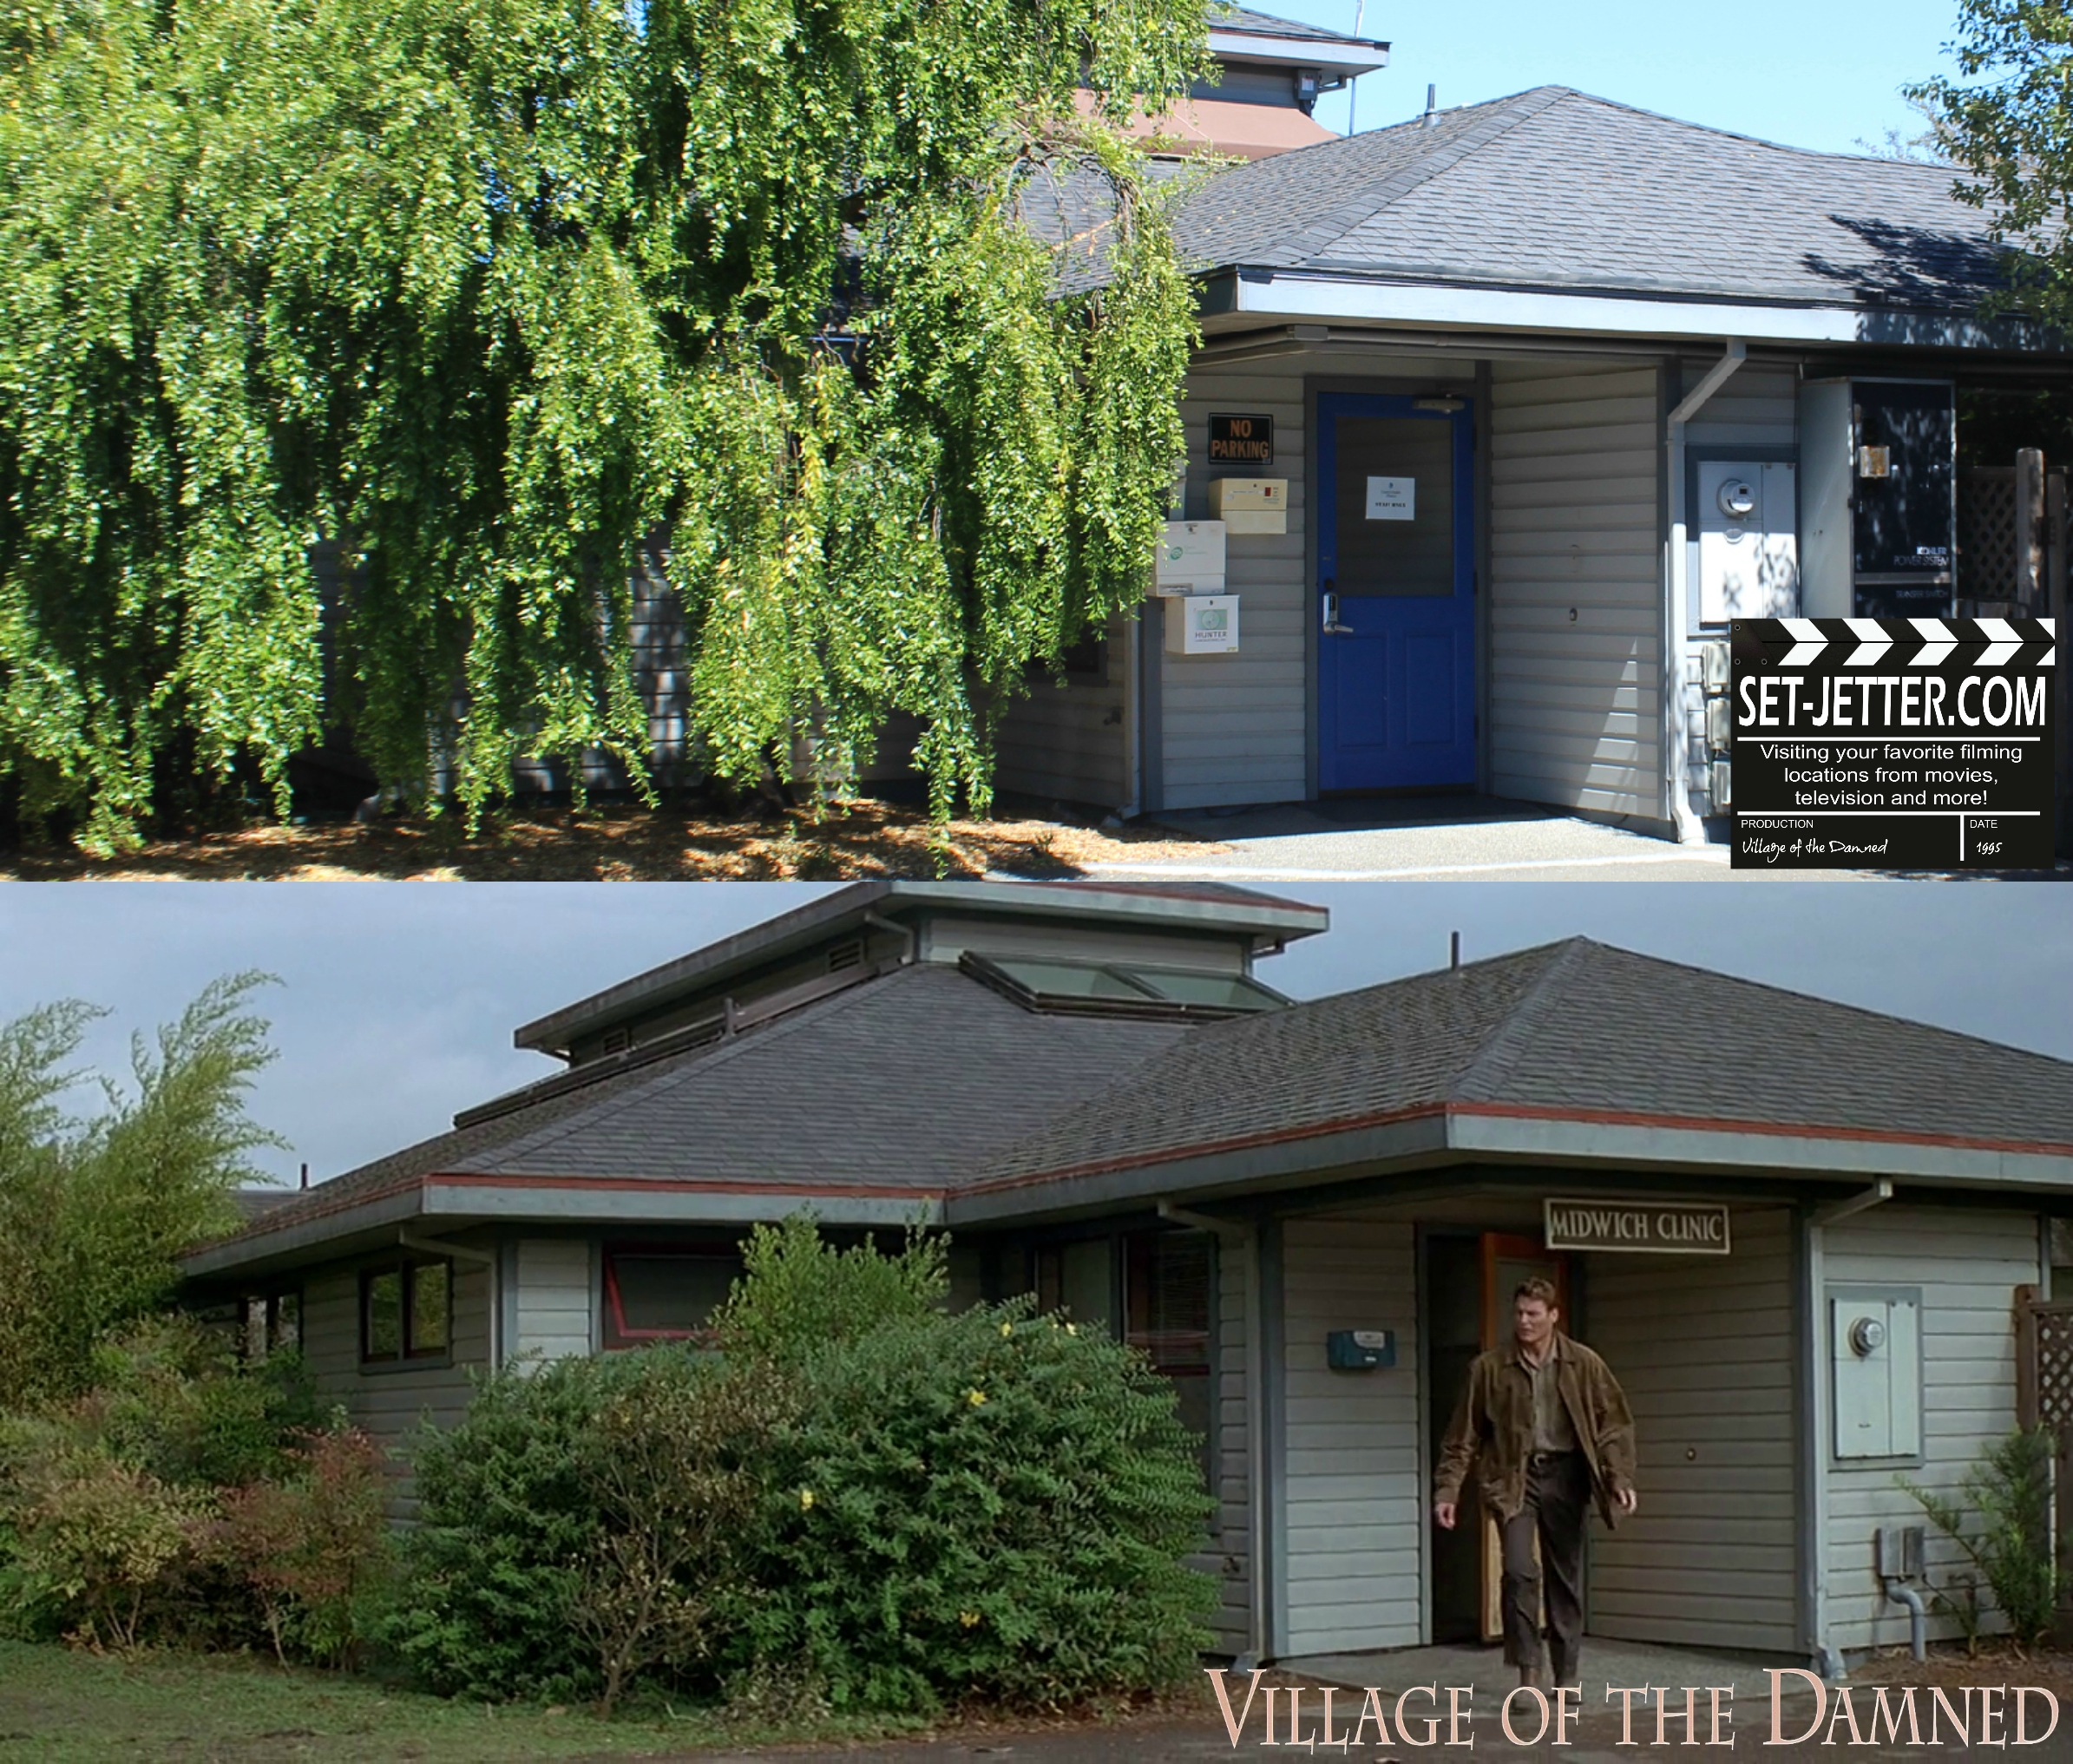 Village of the Damned comparison 141.jpg